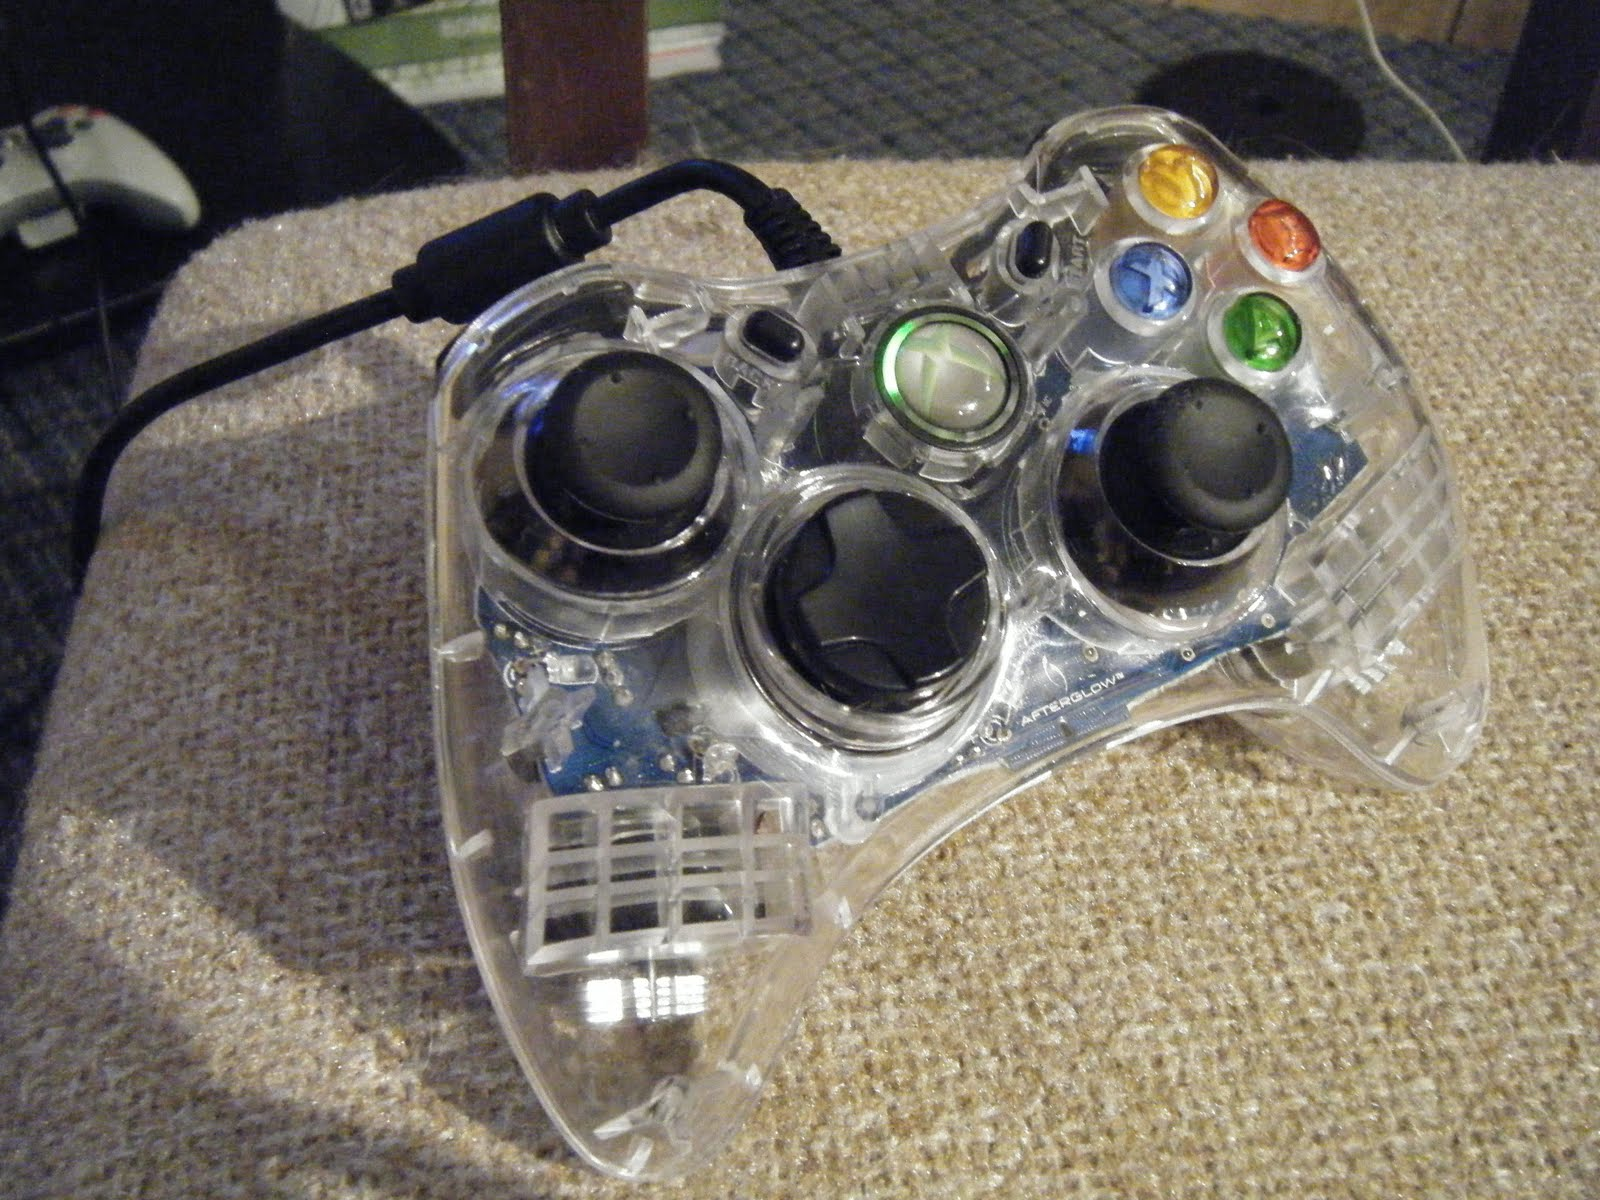 My Boring Life: Review of the Afterglow Xbox360 wired Controller